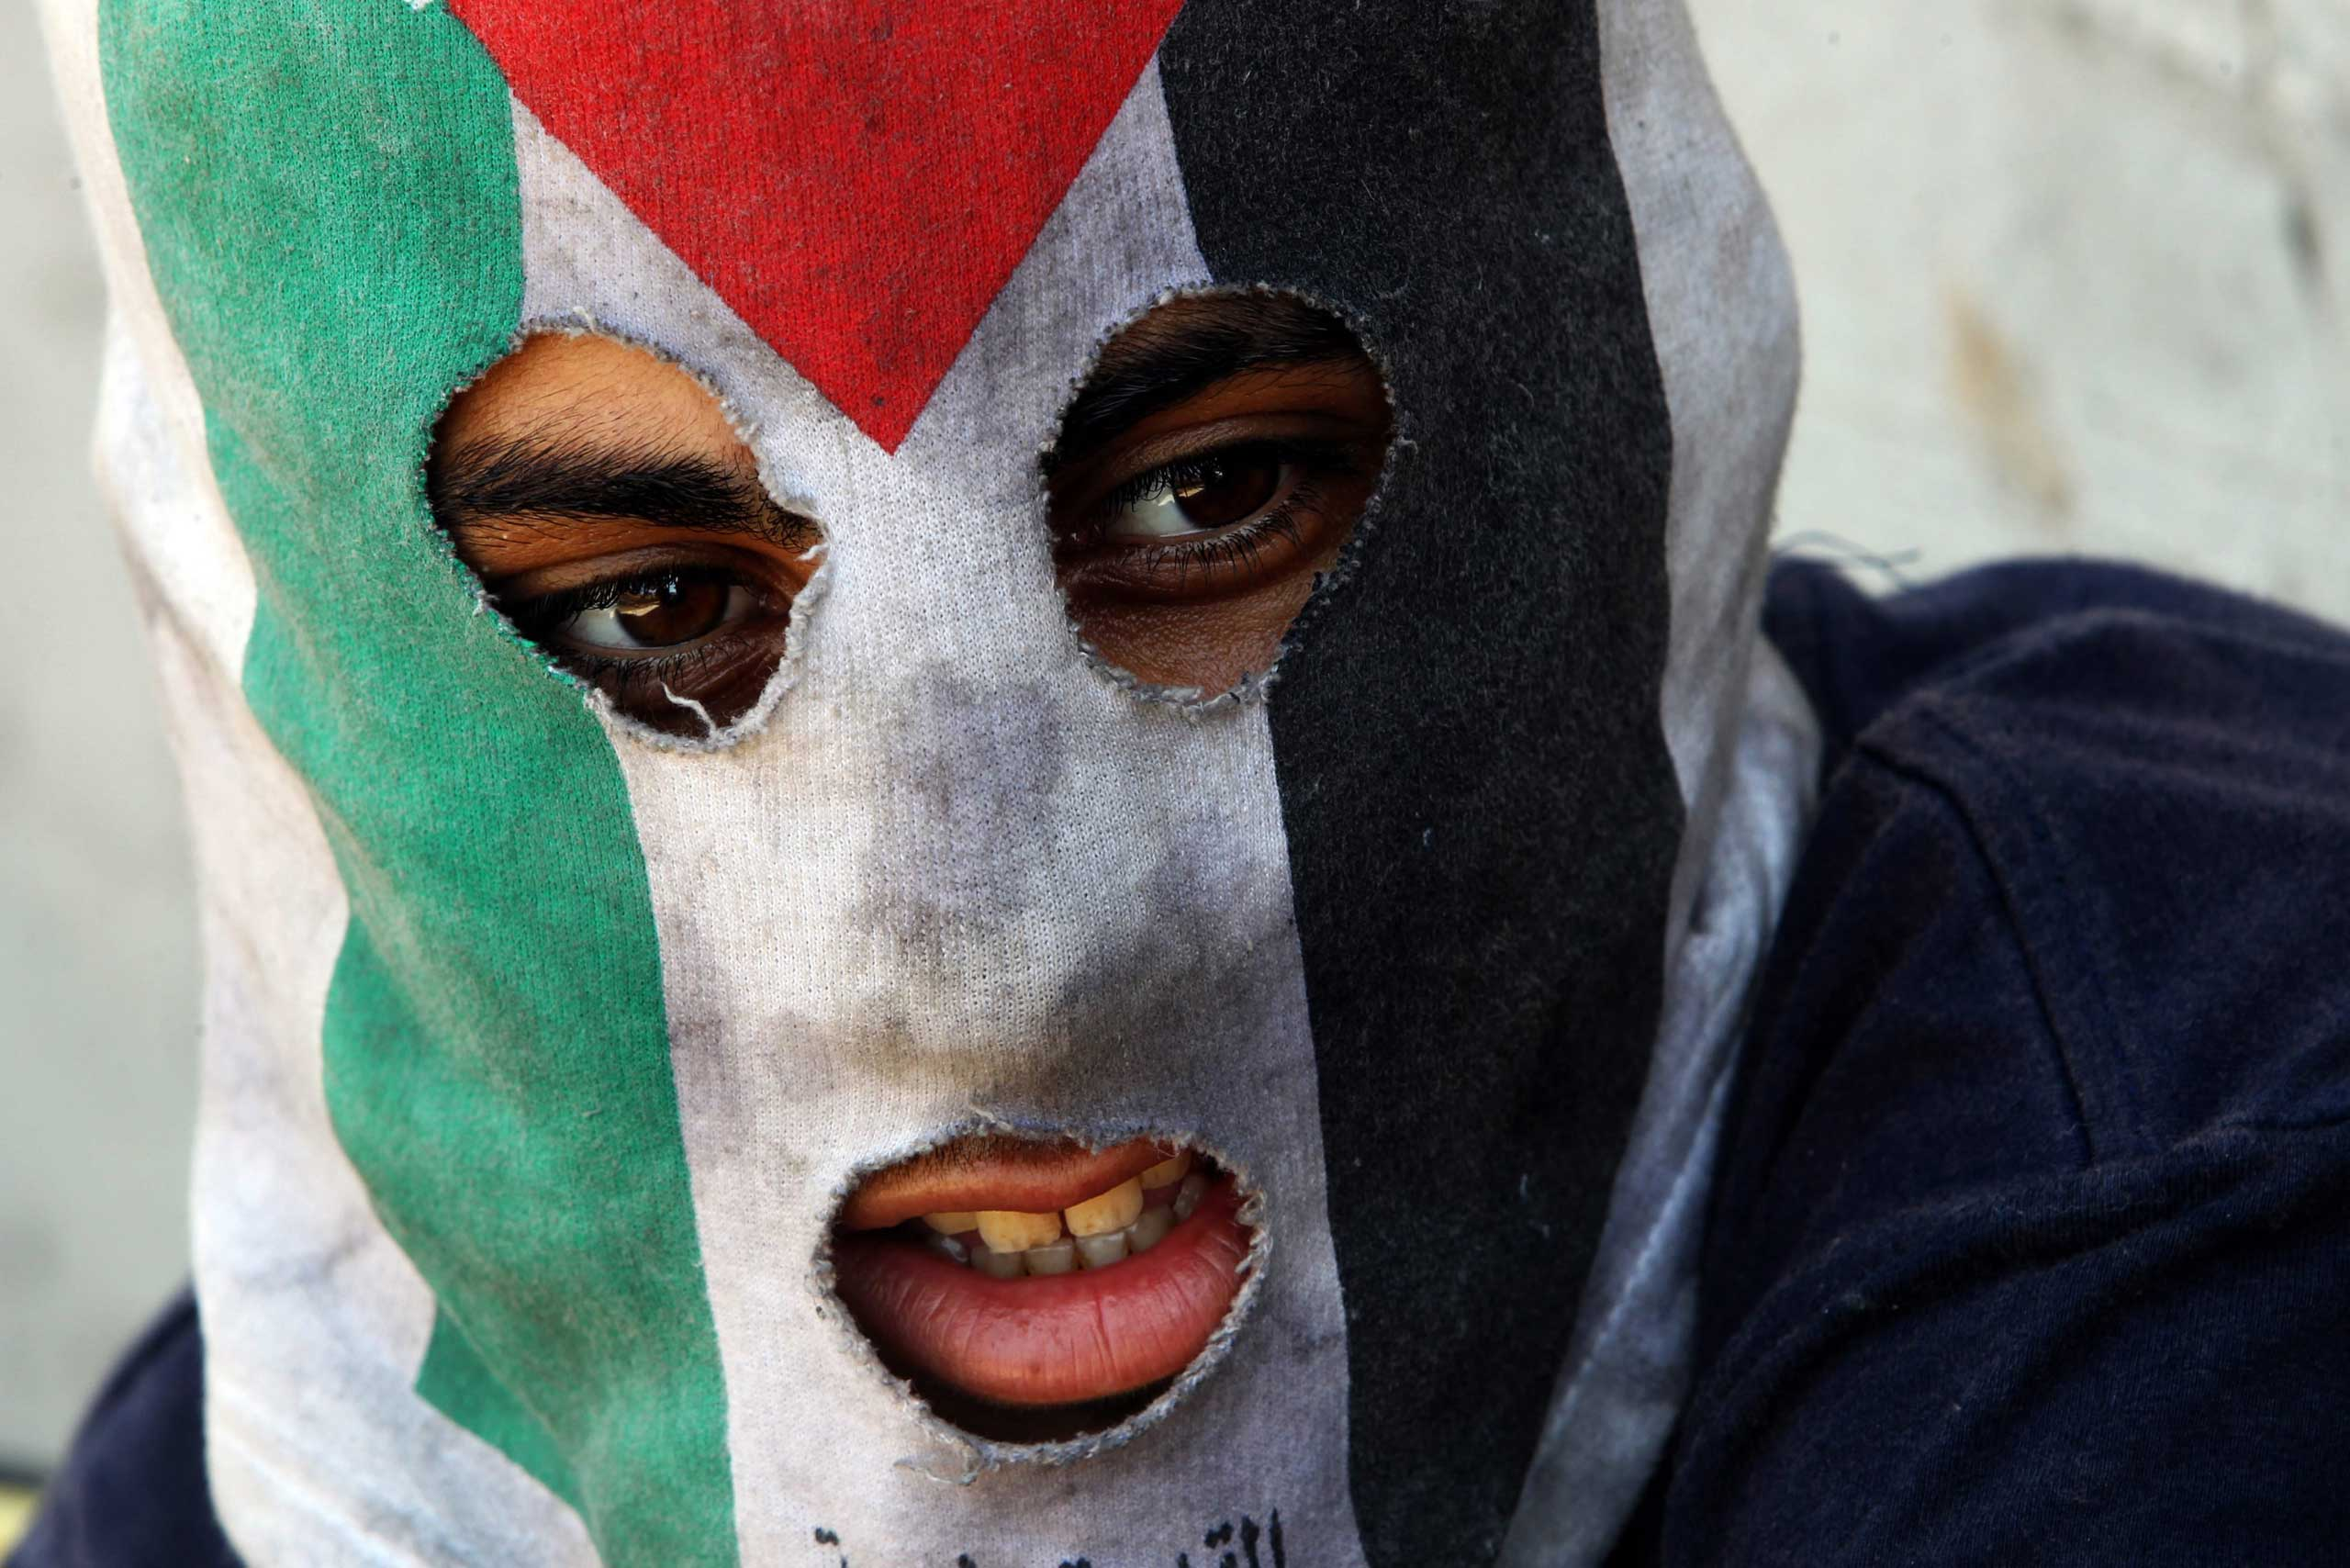 Sept. 19, 2014. A Palestinian protester wears a mask during clashes over the Jewish settlement of Qadomem at Kofr Qadom village, near West Bank city of Nablus.